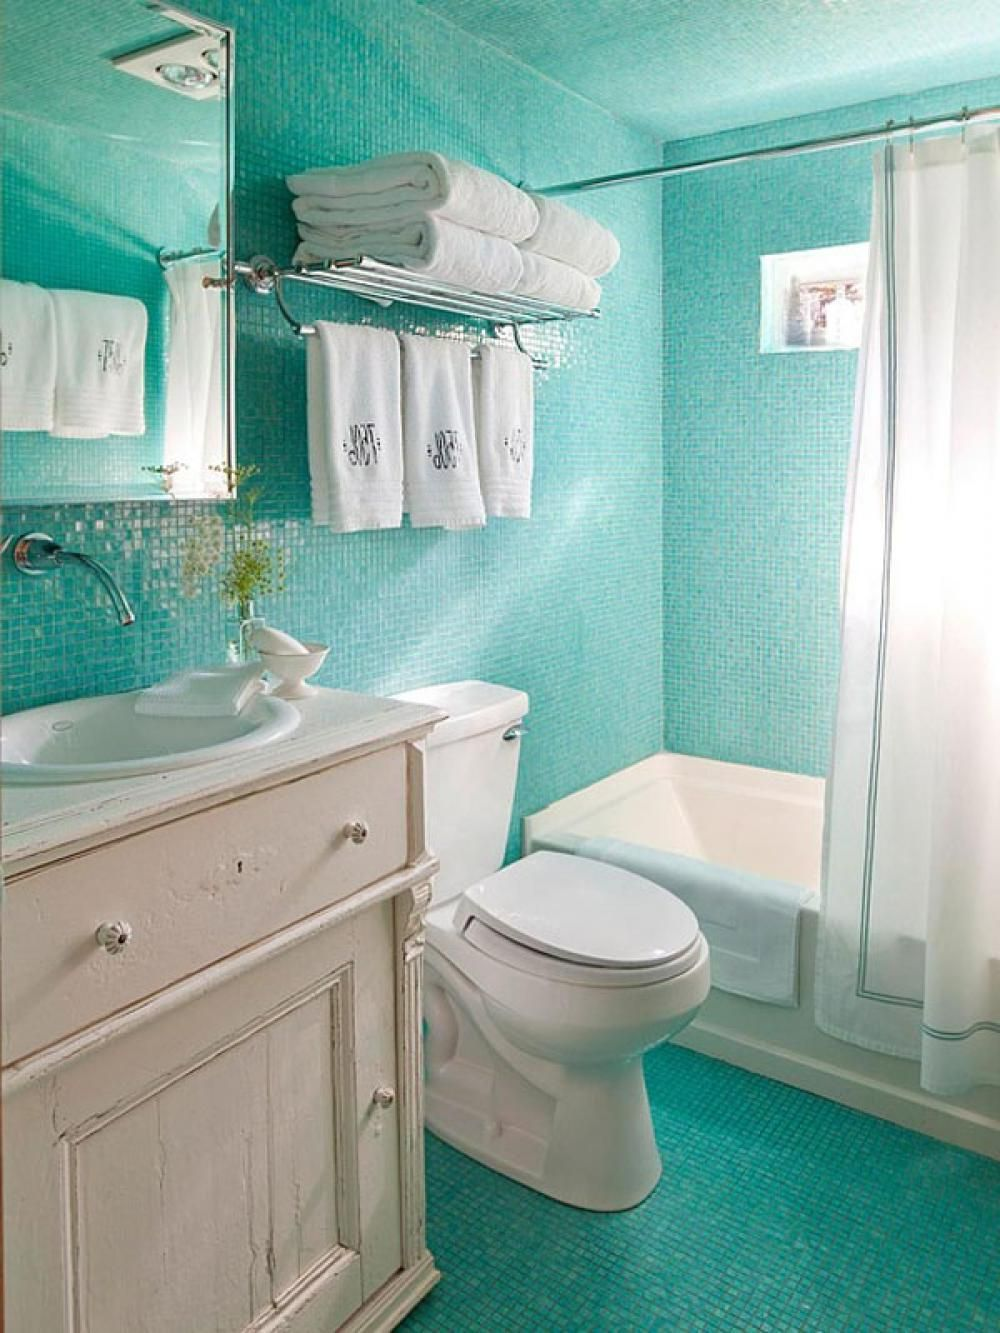 Chic turquoise mosaic tiles ocean inspired bathroom with white vintage bathroom vanity and built Small yacht bathroom design